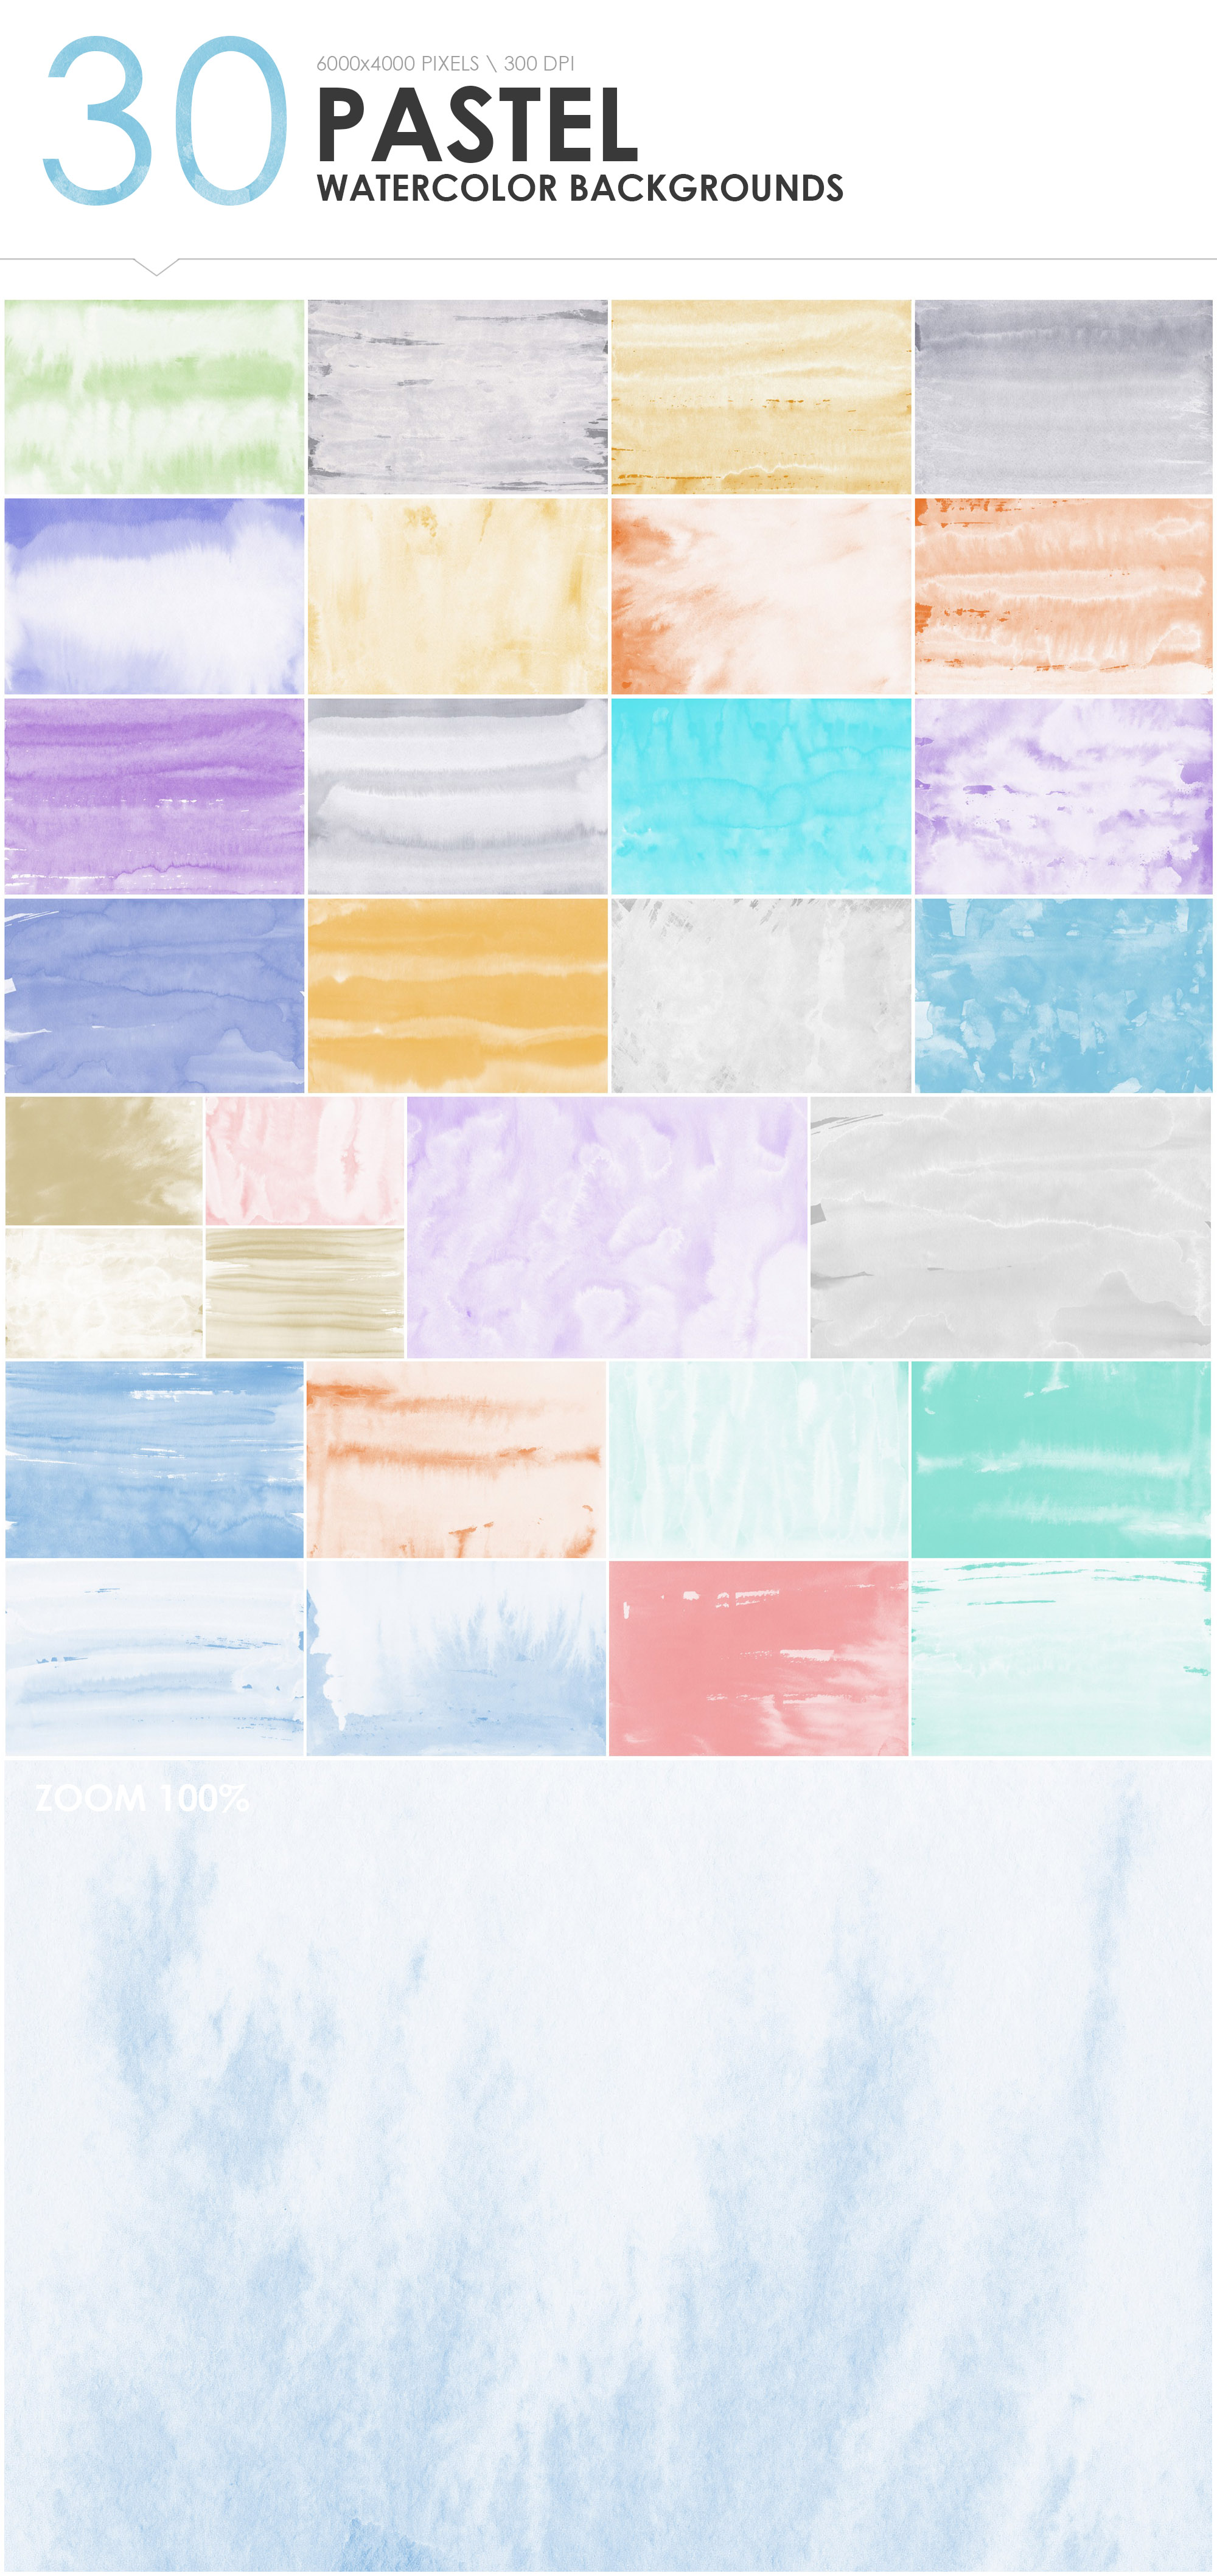 300 Diverse Watercolor Backgrounds example image 8